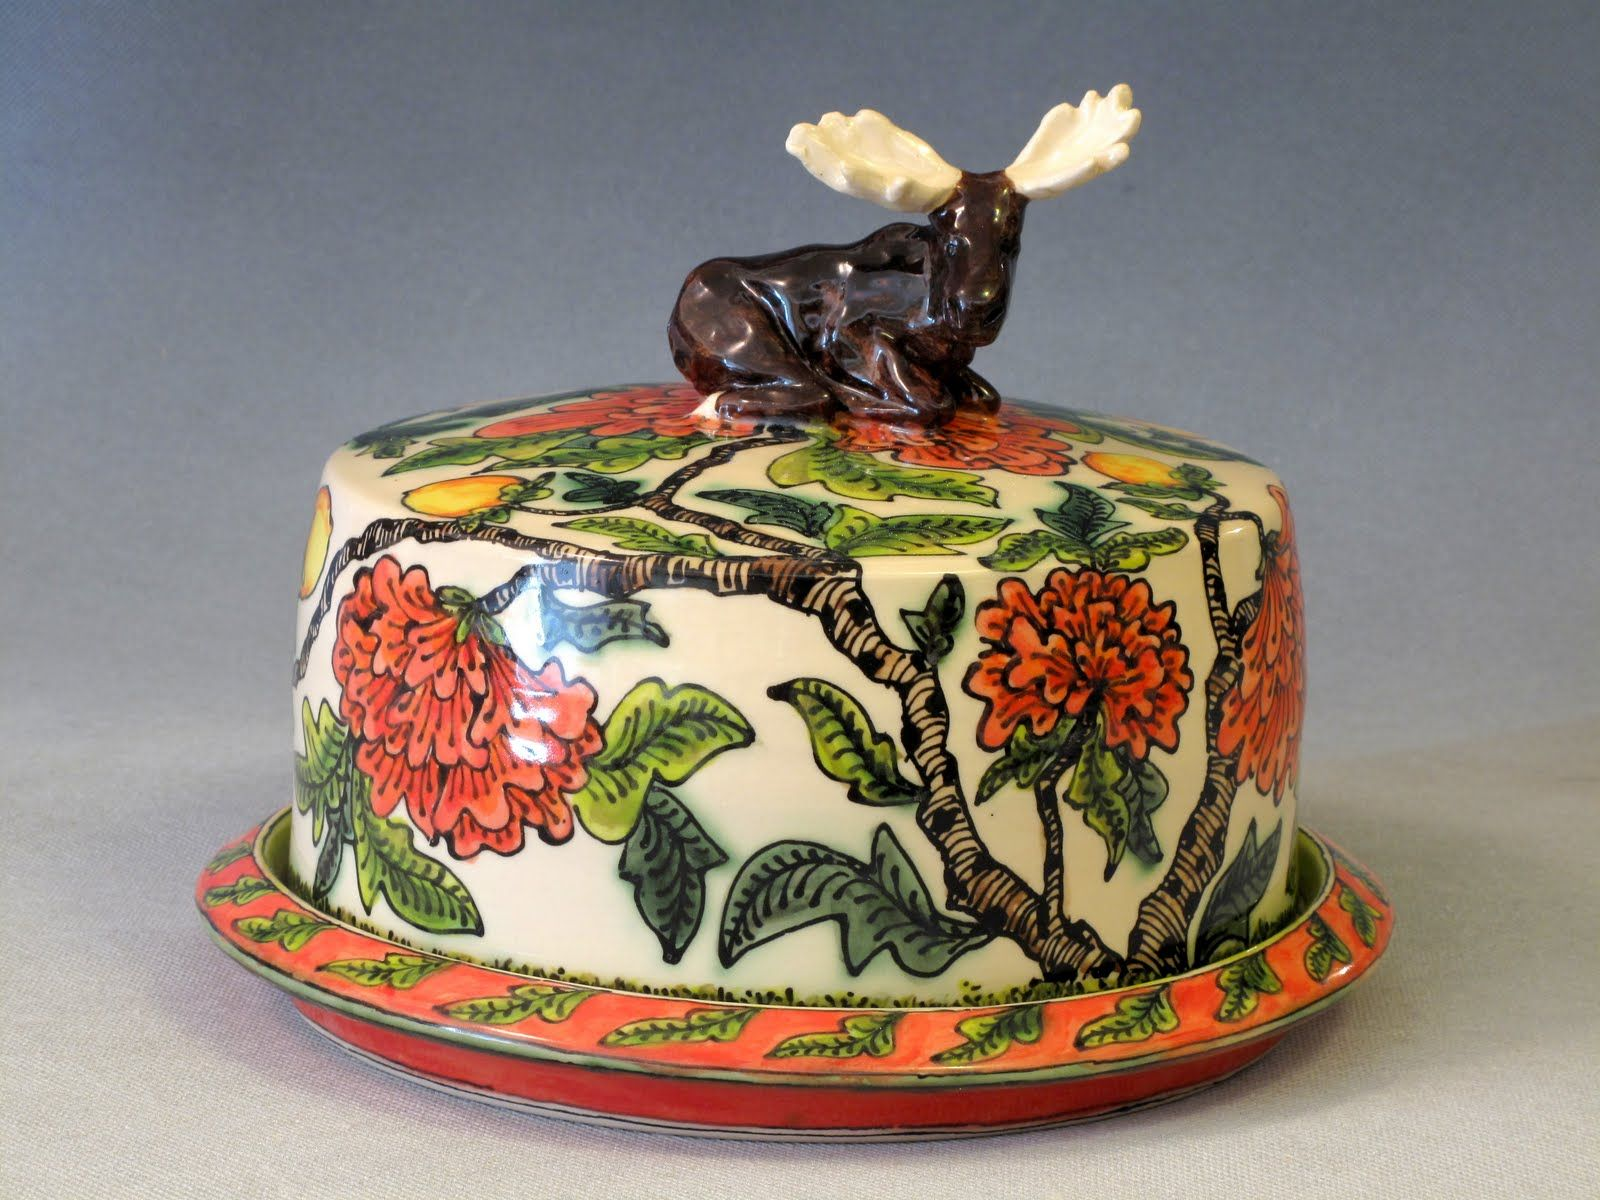 moose cake saver, 23 x 14 cm Cake stand decor, Moose